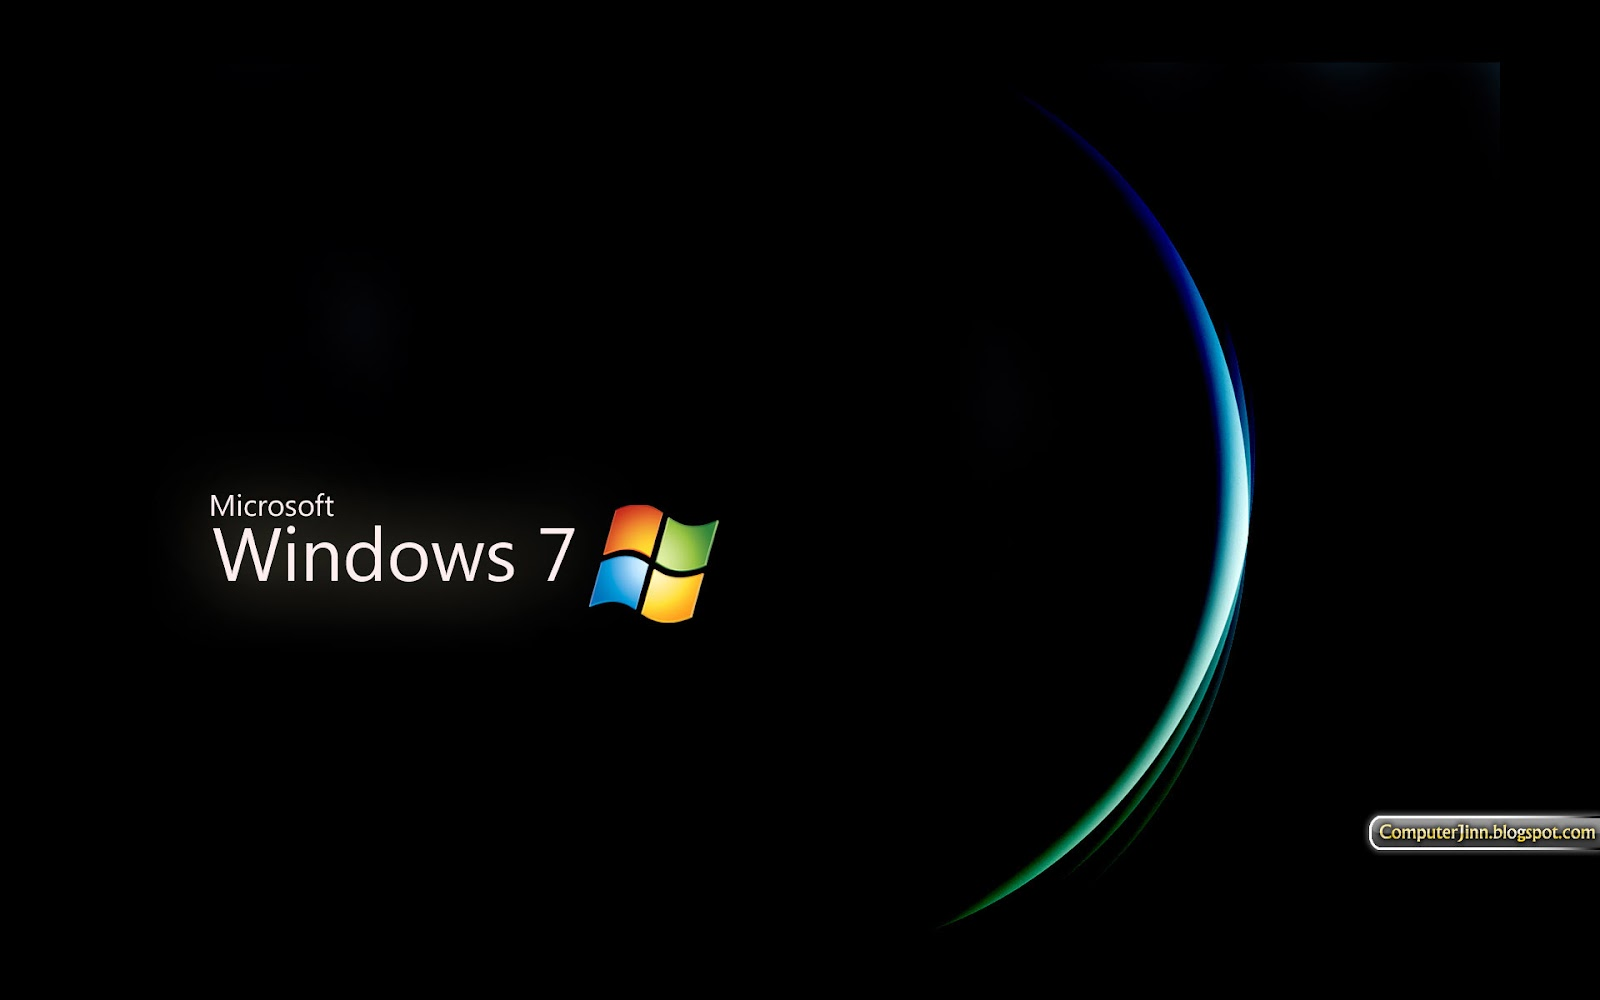 Windows 7 Black And Dark Hd Wallpapers Wallpapers